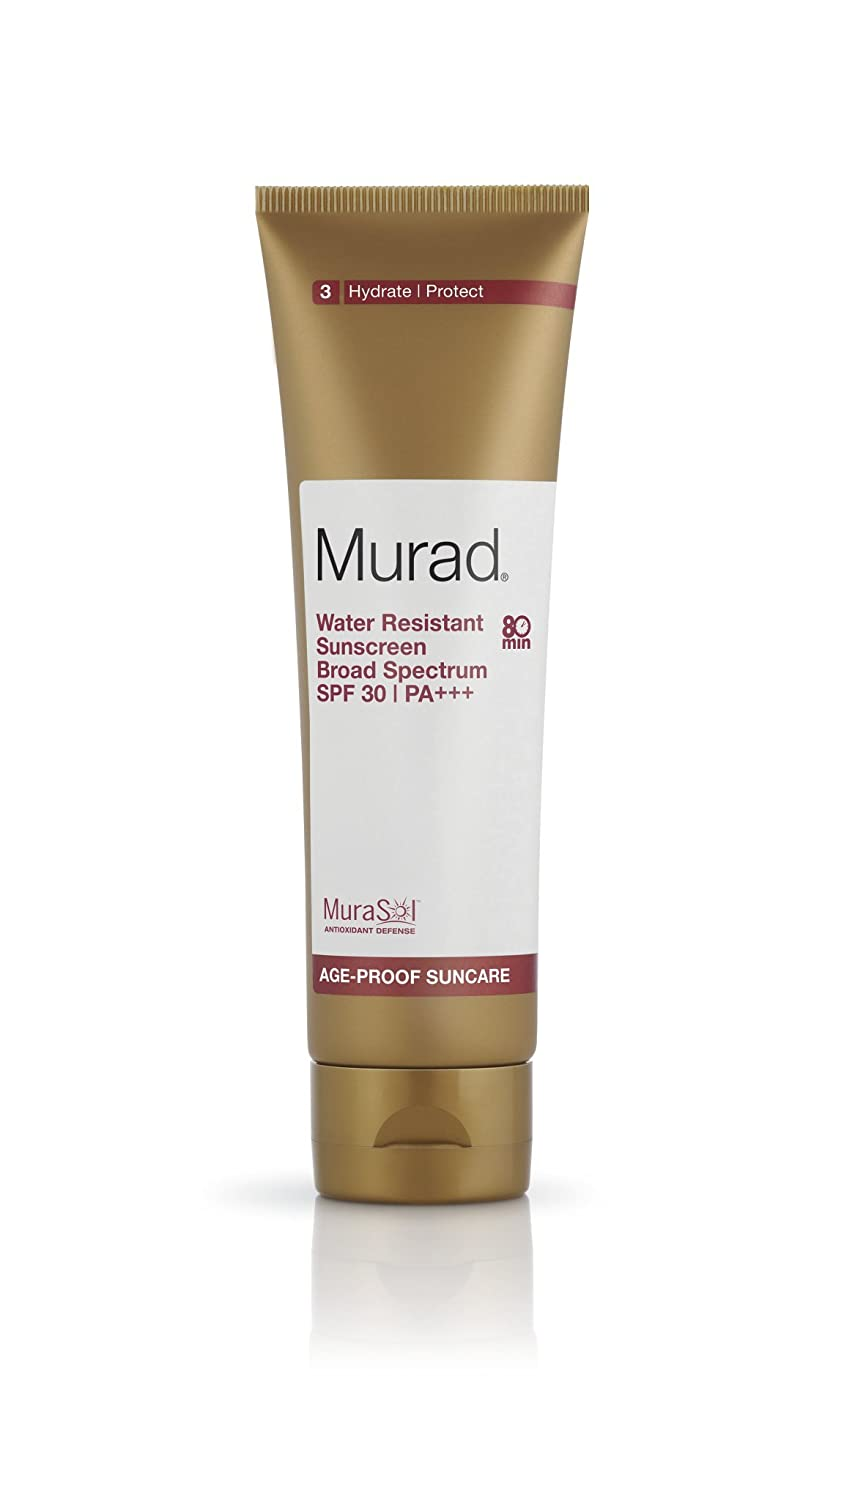 Murad Water Resistant Sunscreen Broad Sprectrum SPF 30 PA+++, 4.3 Fluid Ounce 80304